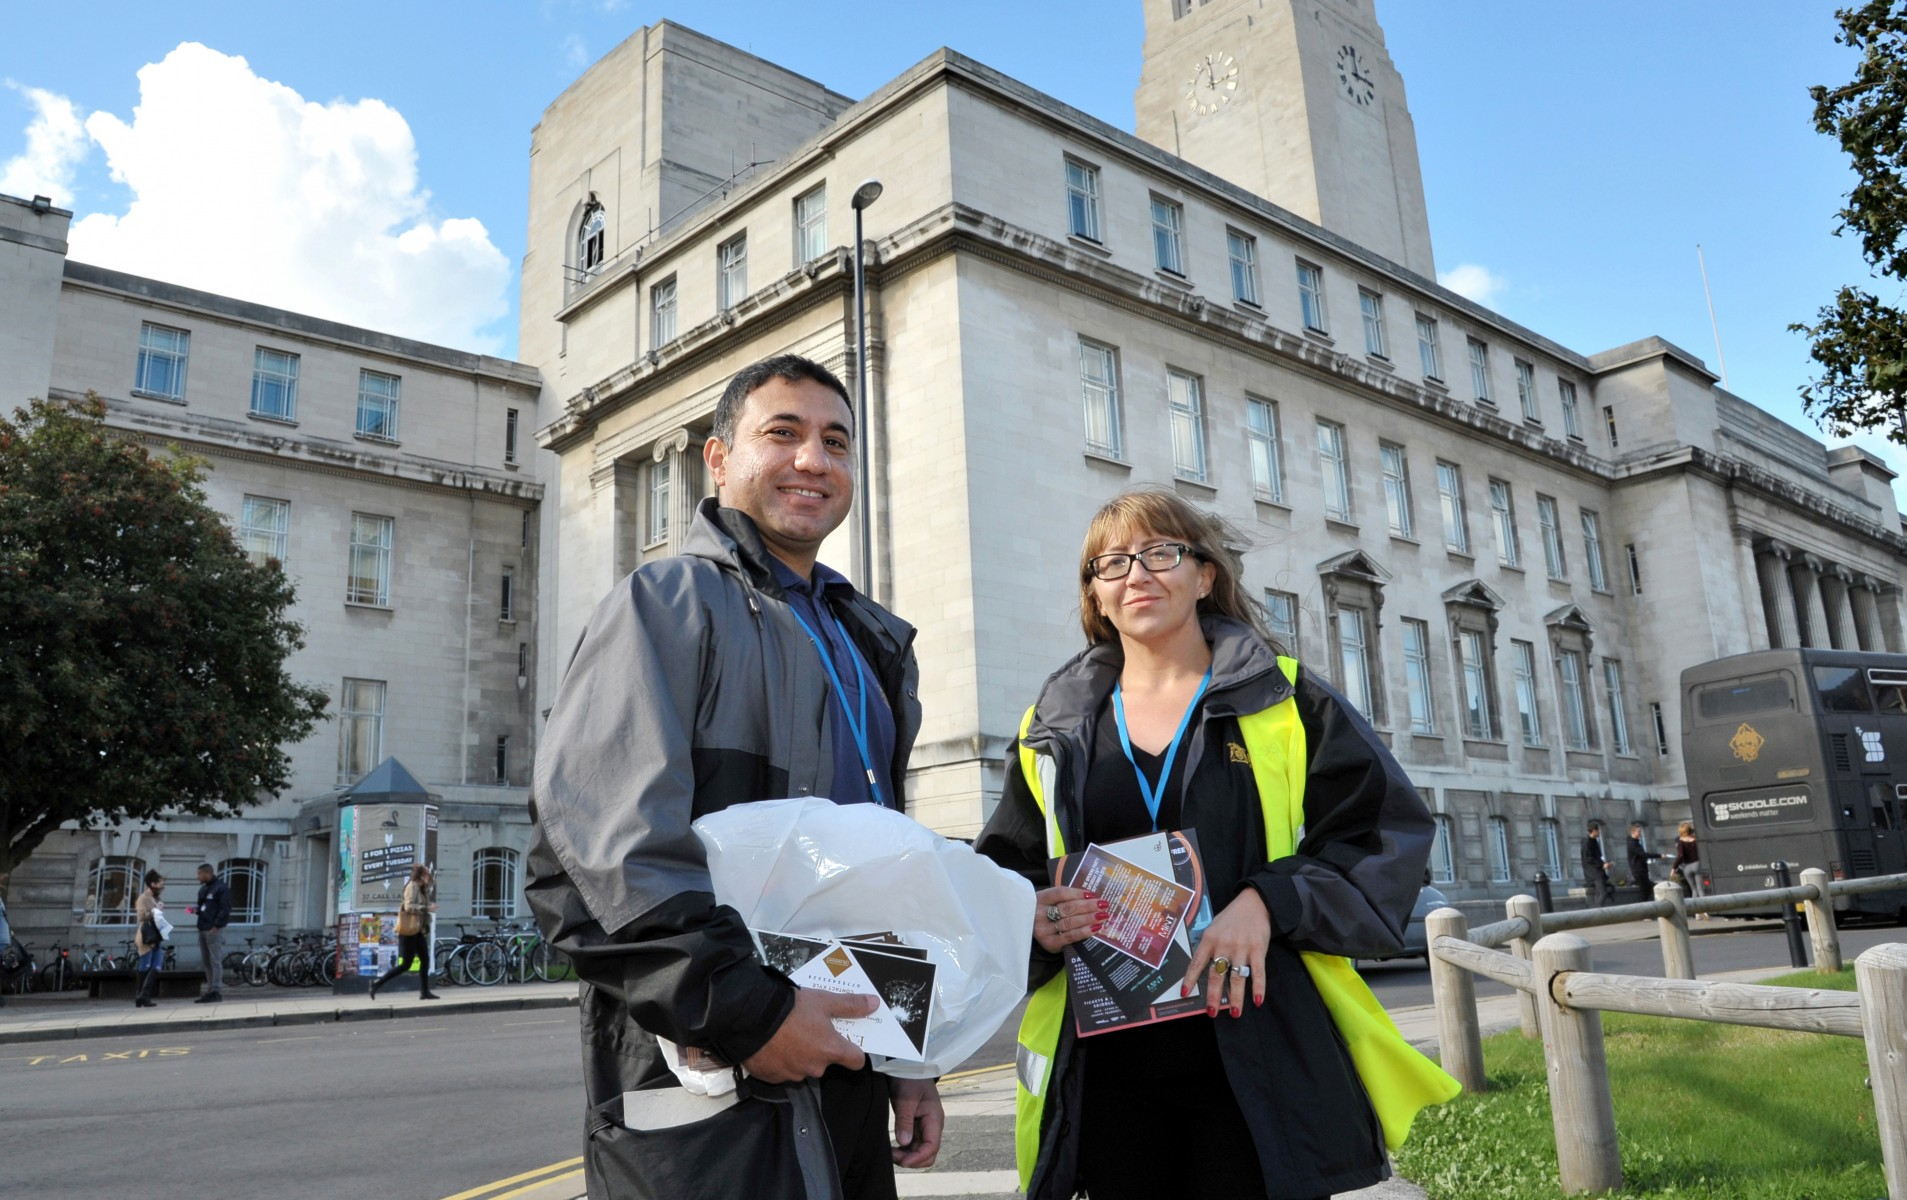 Environmental action officers Aqeel Syed and Annie Hutton